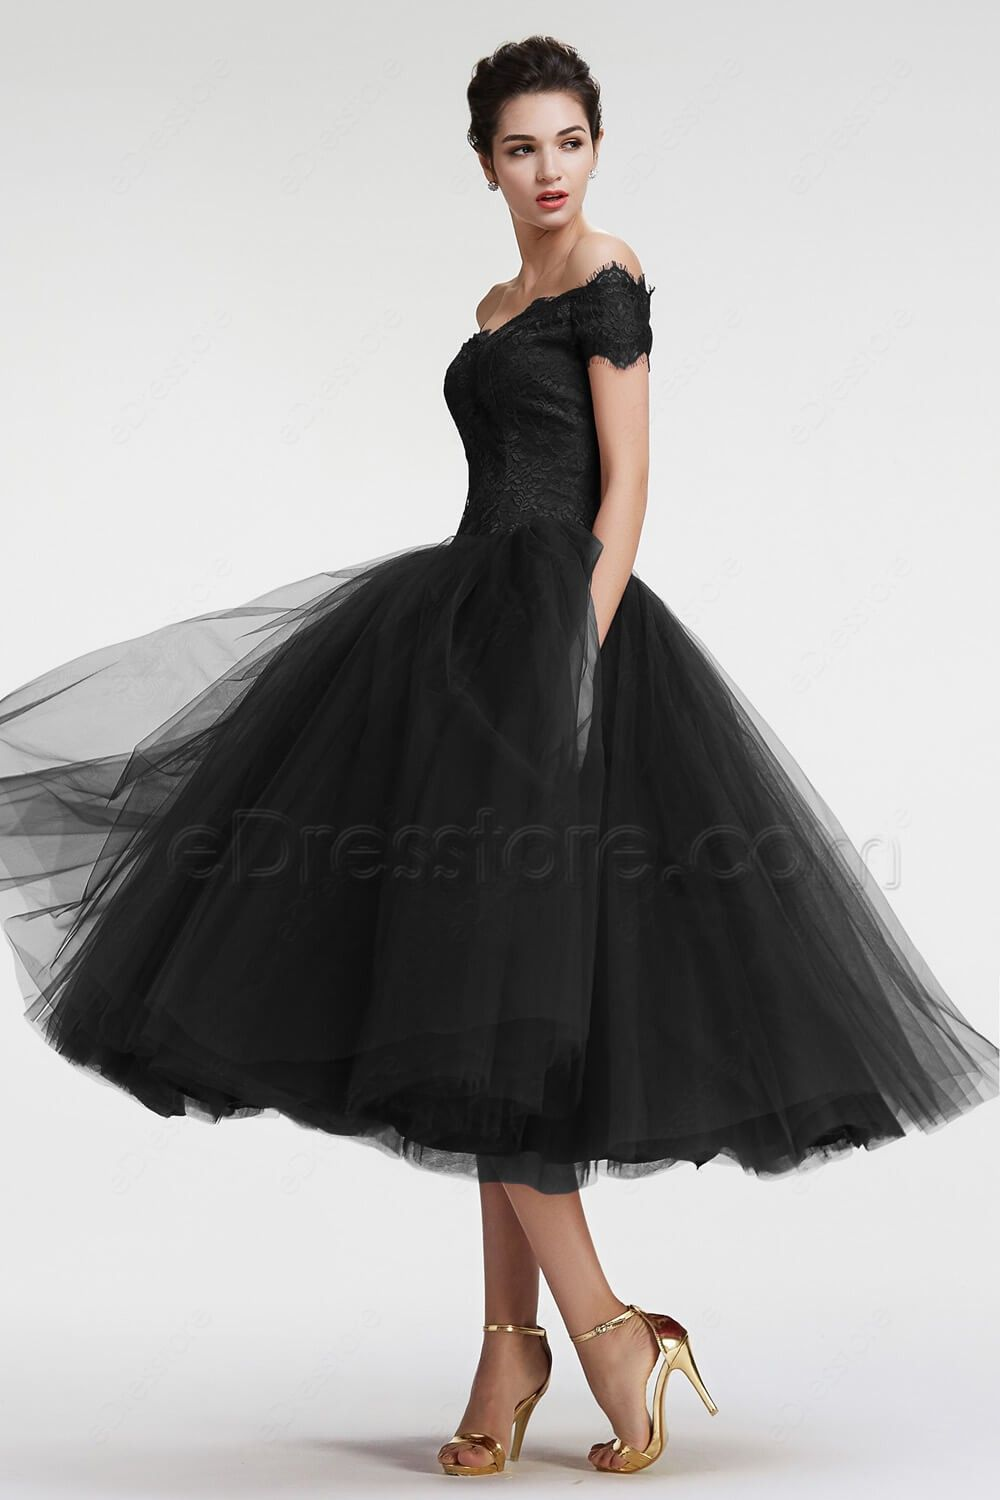 9af3d6f73e7 The black homecoming dress features off the shoulder neckline with  scallops